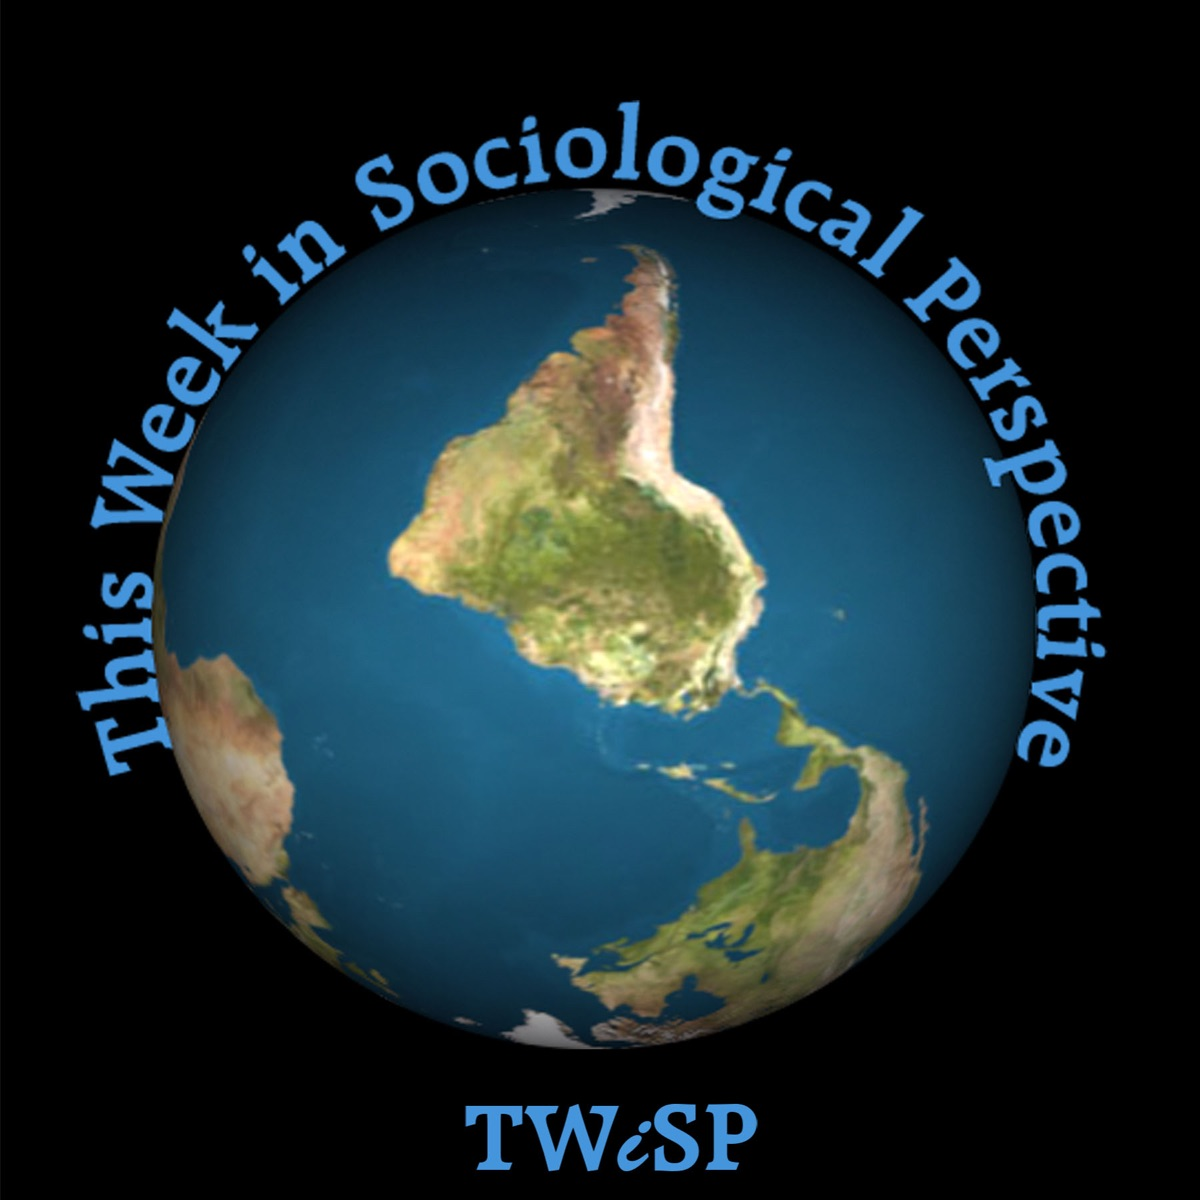 This Week in Sociological Perspective